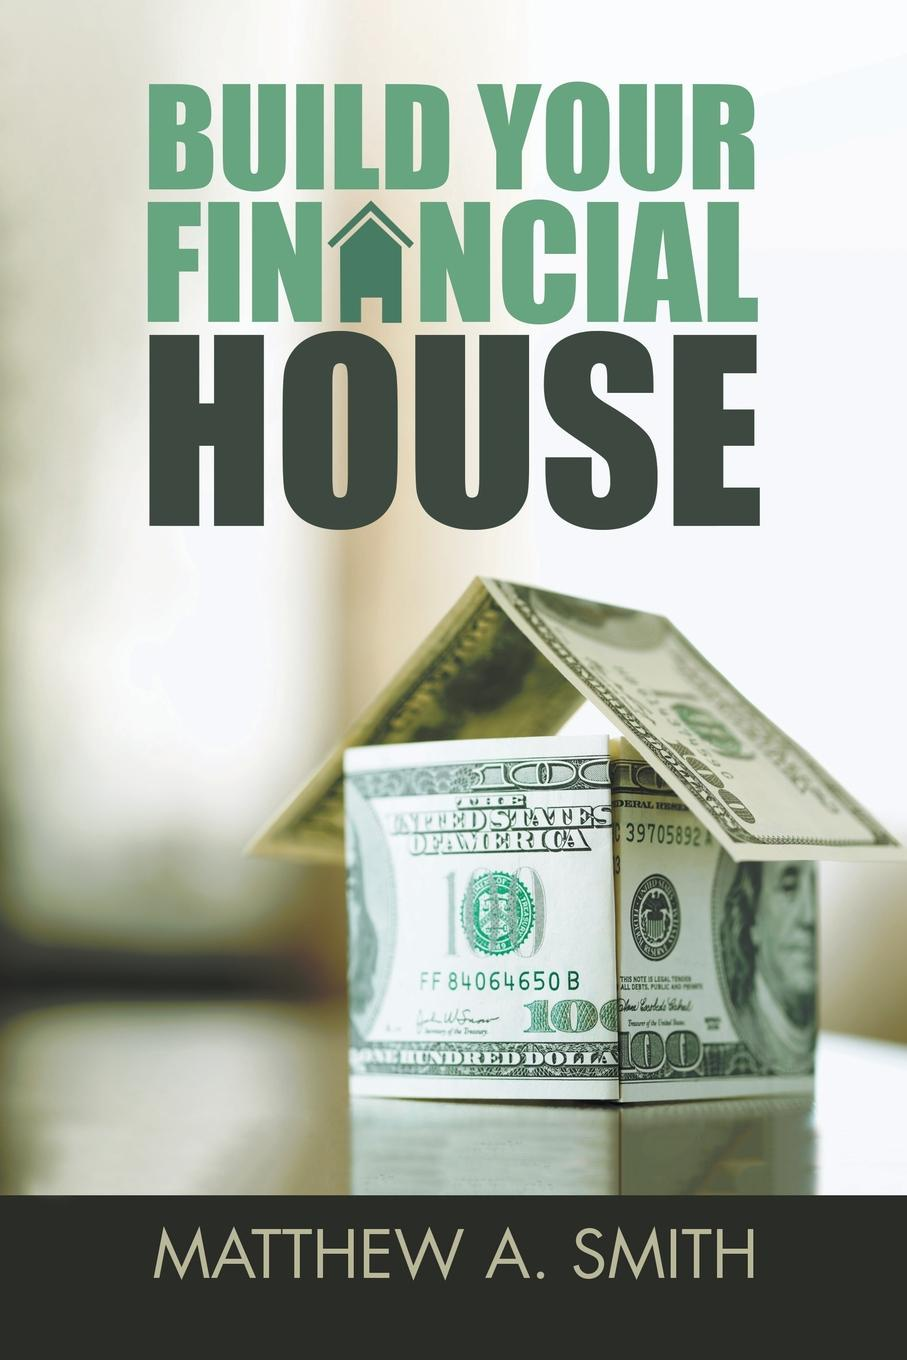 Matthew A. Smith Build Your Financial House ian pollard investing in your life your biggest investment opportunities are not necessarily financial